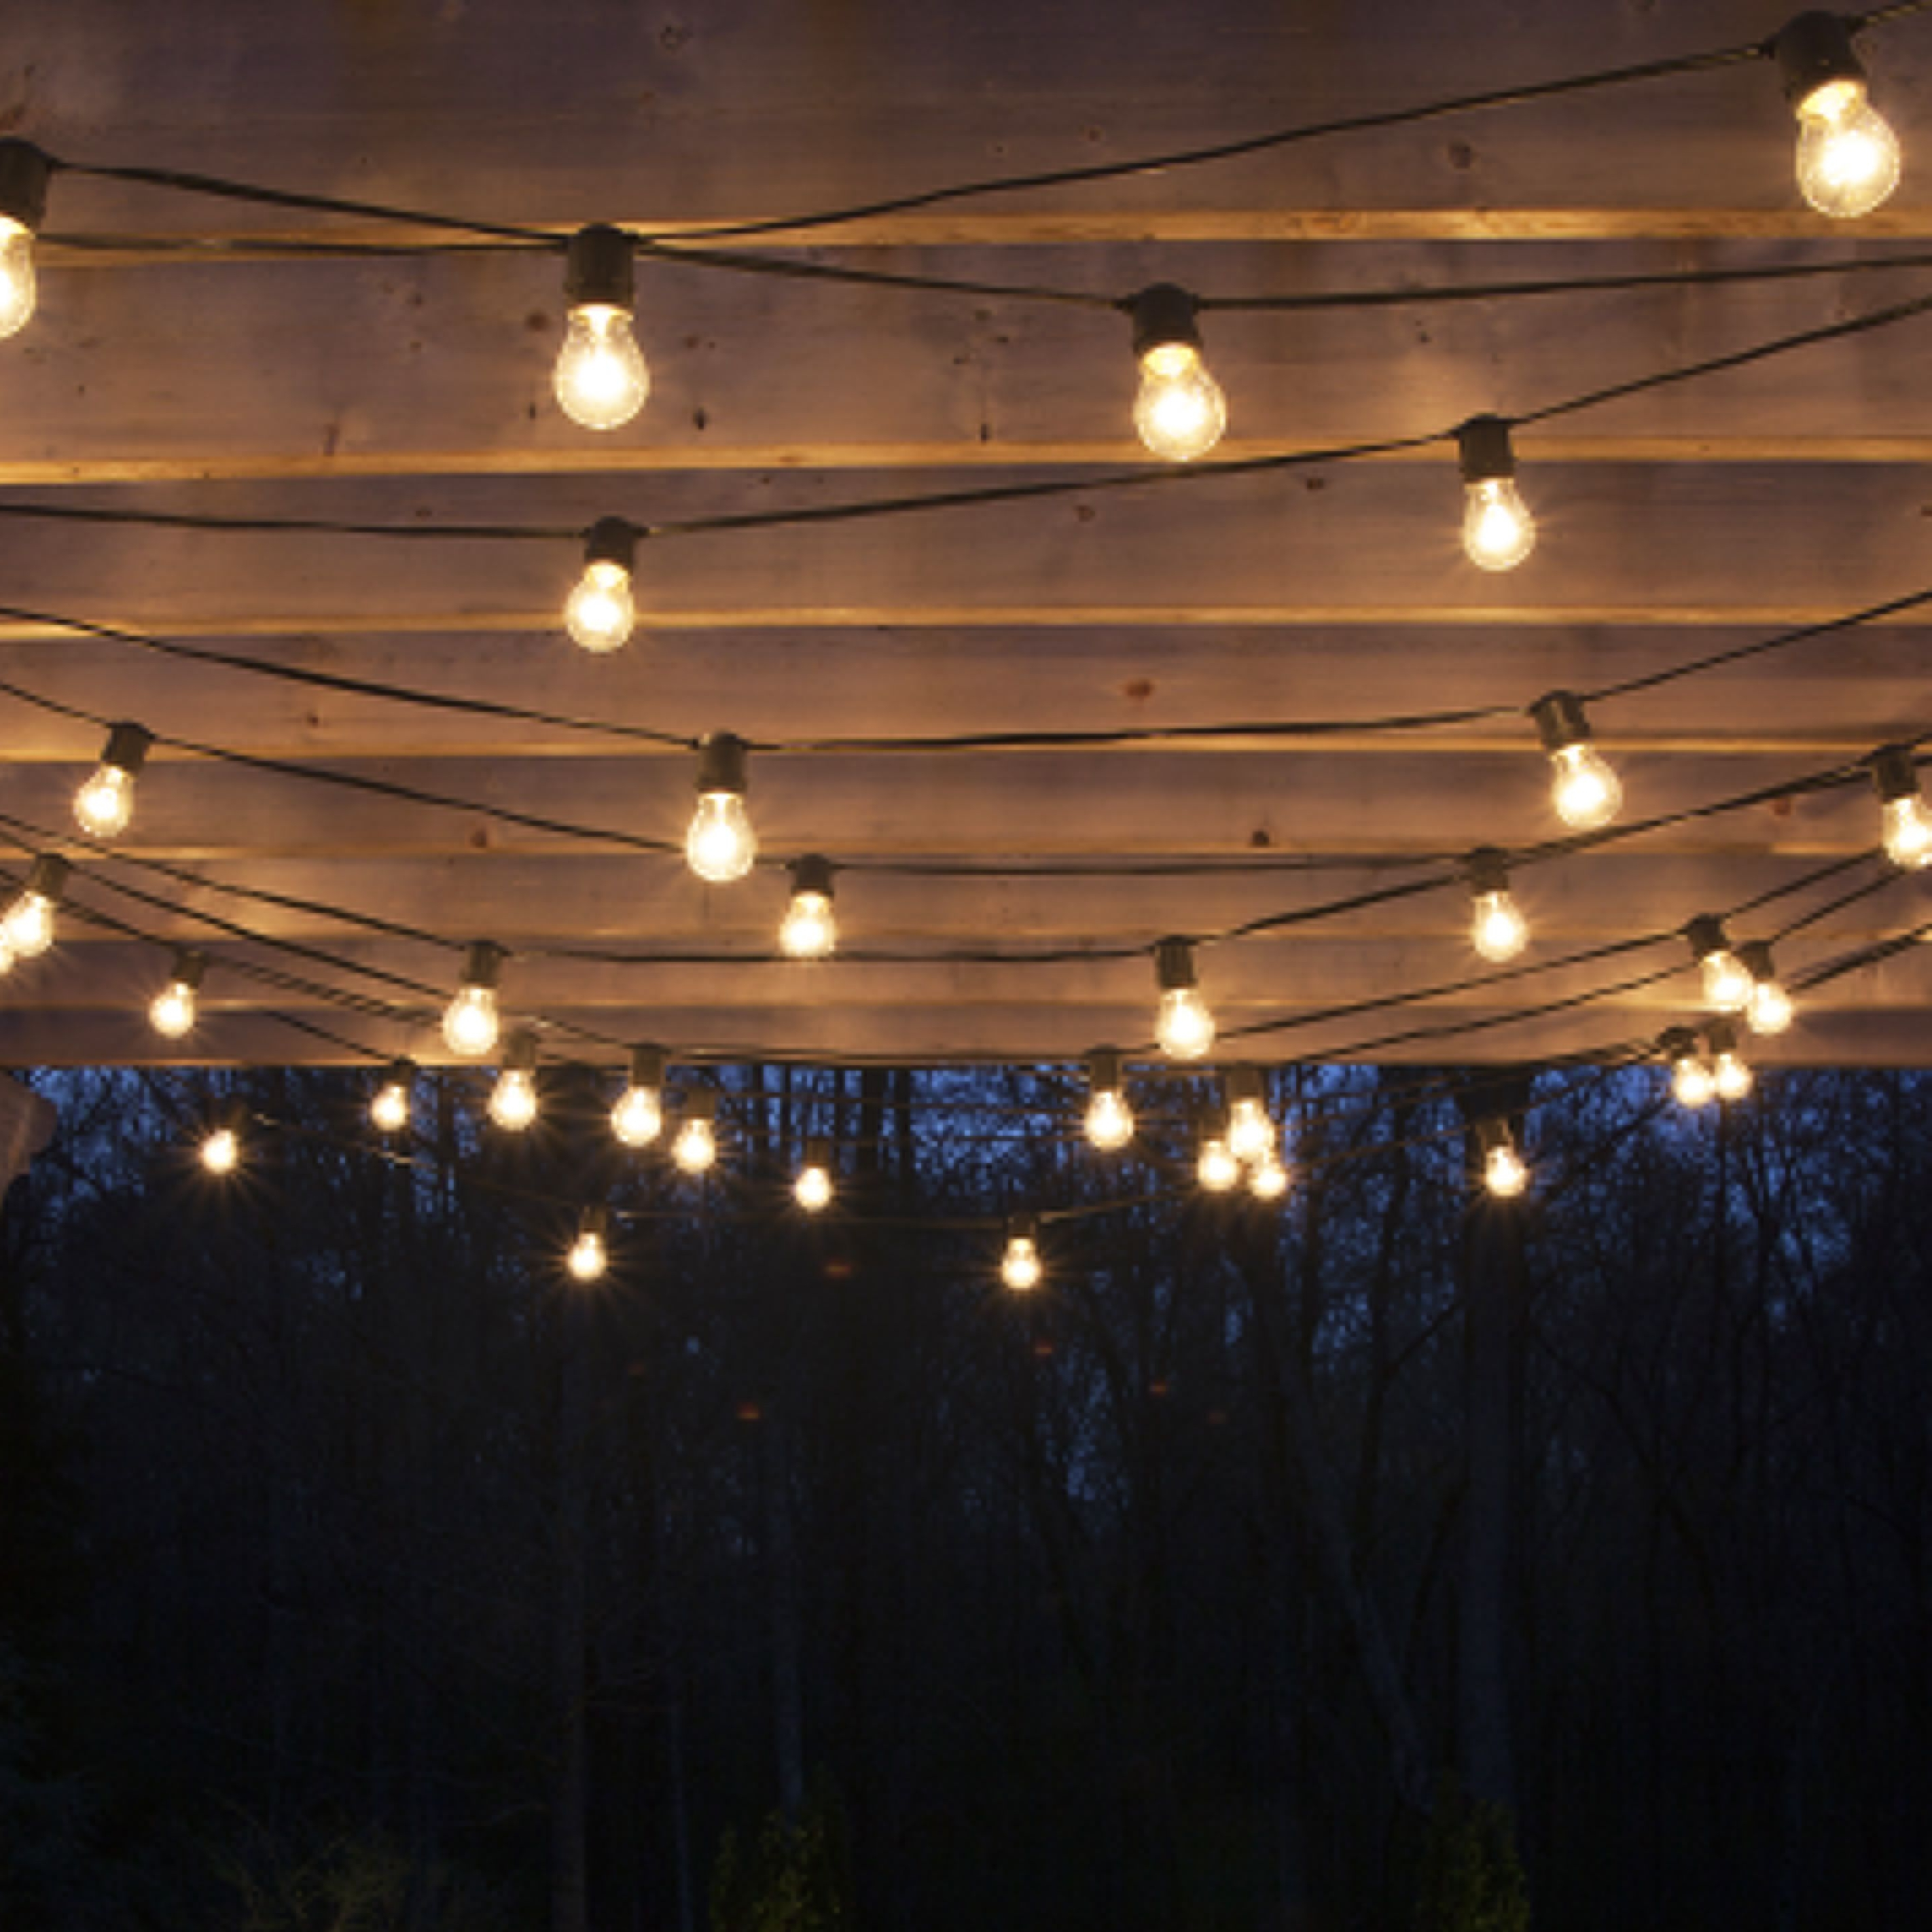 Patio Lighting, Pergolas And Patios Inside 2018 Outdoor Hanging Lights For Pergola (View 16 of 20)